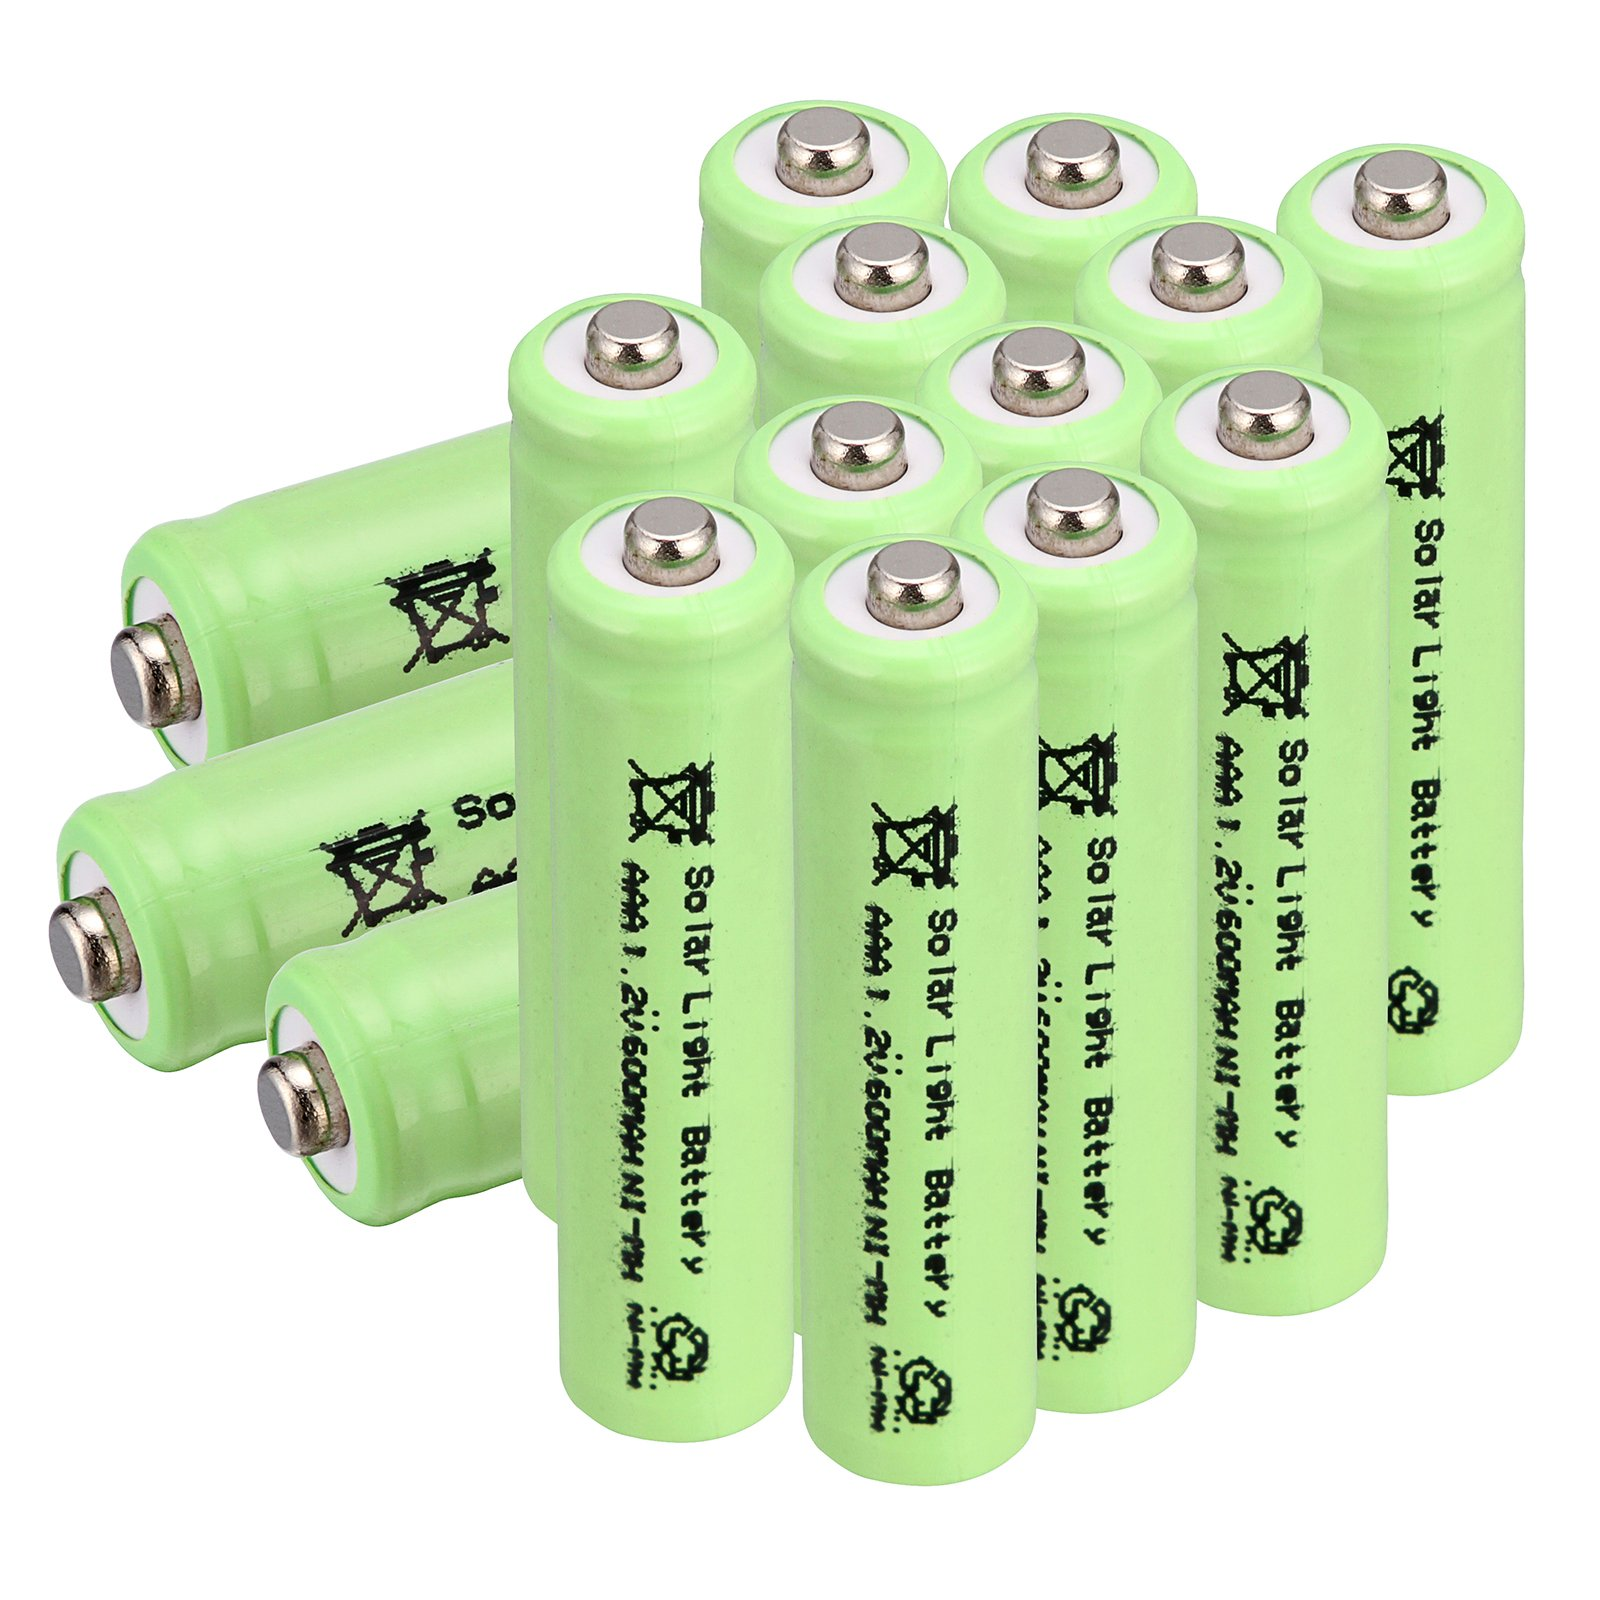 Windmax Greem 15 PCS 3A AAA 1.2V 600mAh Rechargeable Battery White NiMH 3A batteries for Solar Light